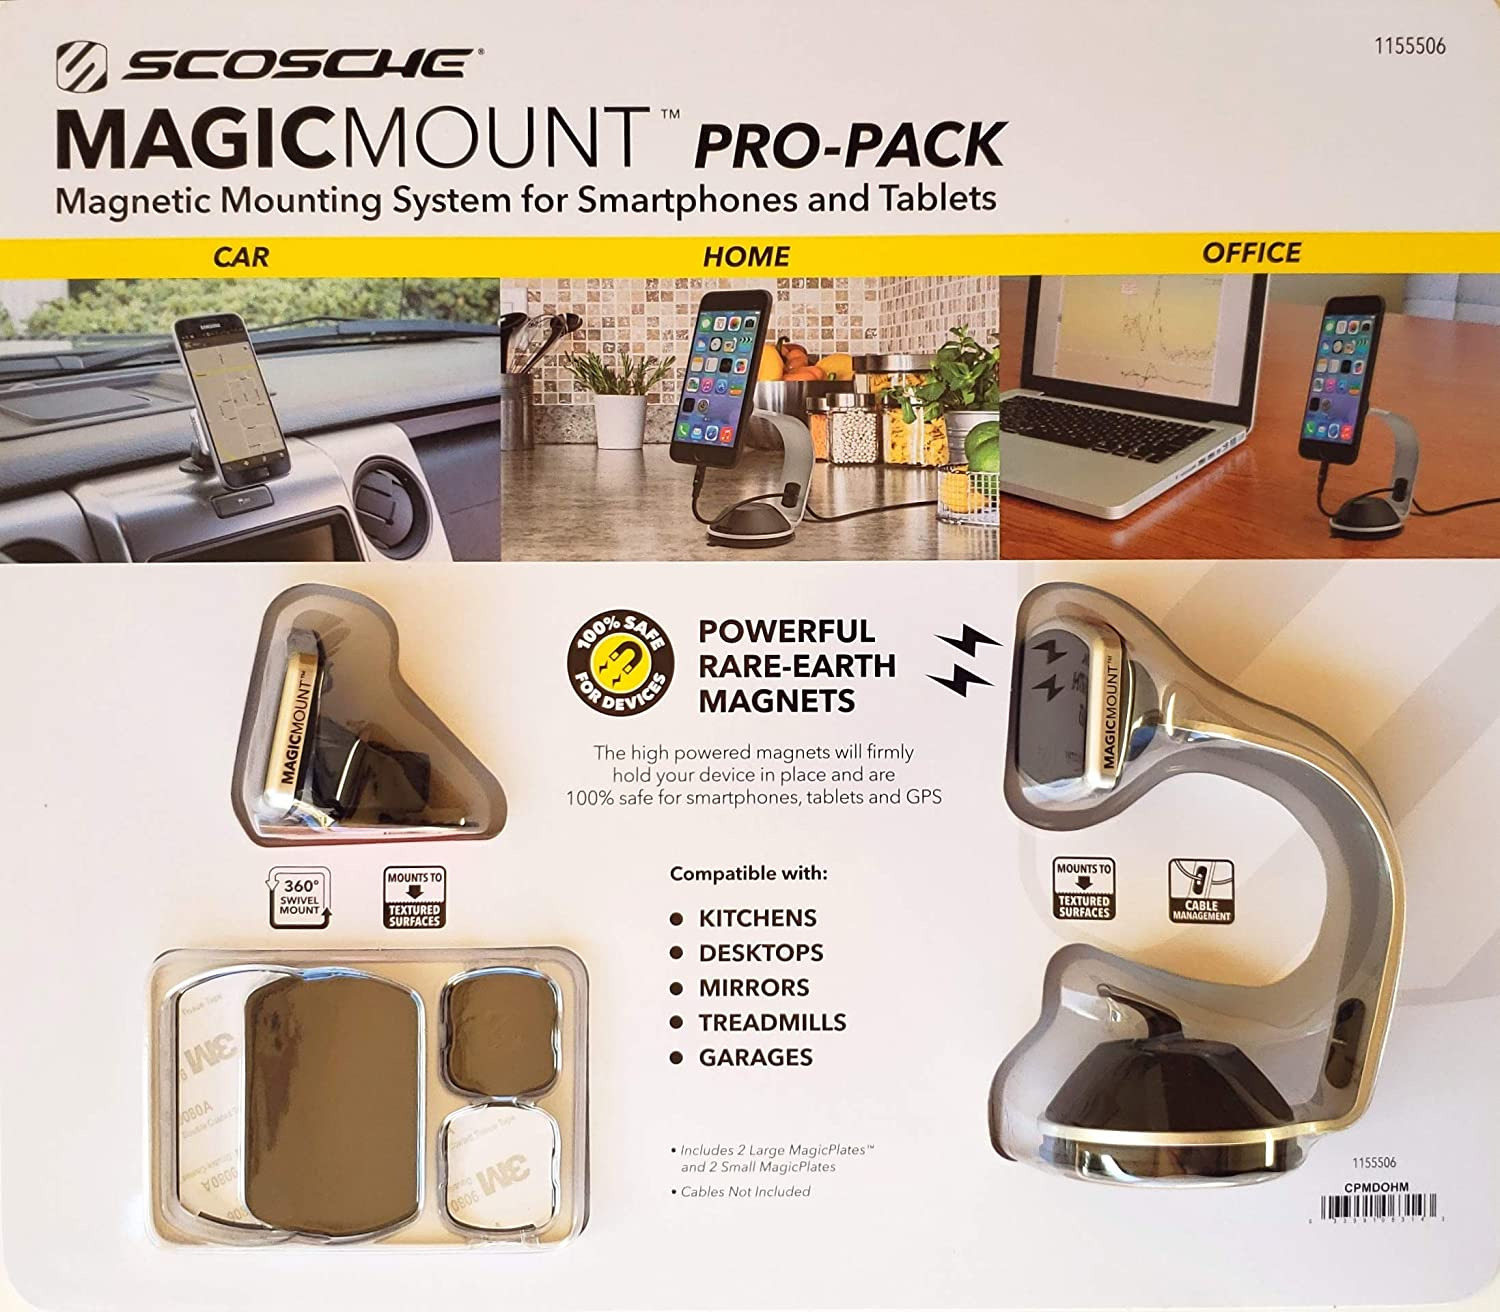 SCOSCHE MagicMount Pro-Pack Universal Fit Magnetic Mounting System for Smartphones and Tablets